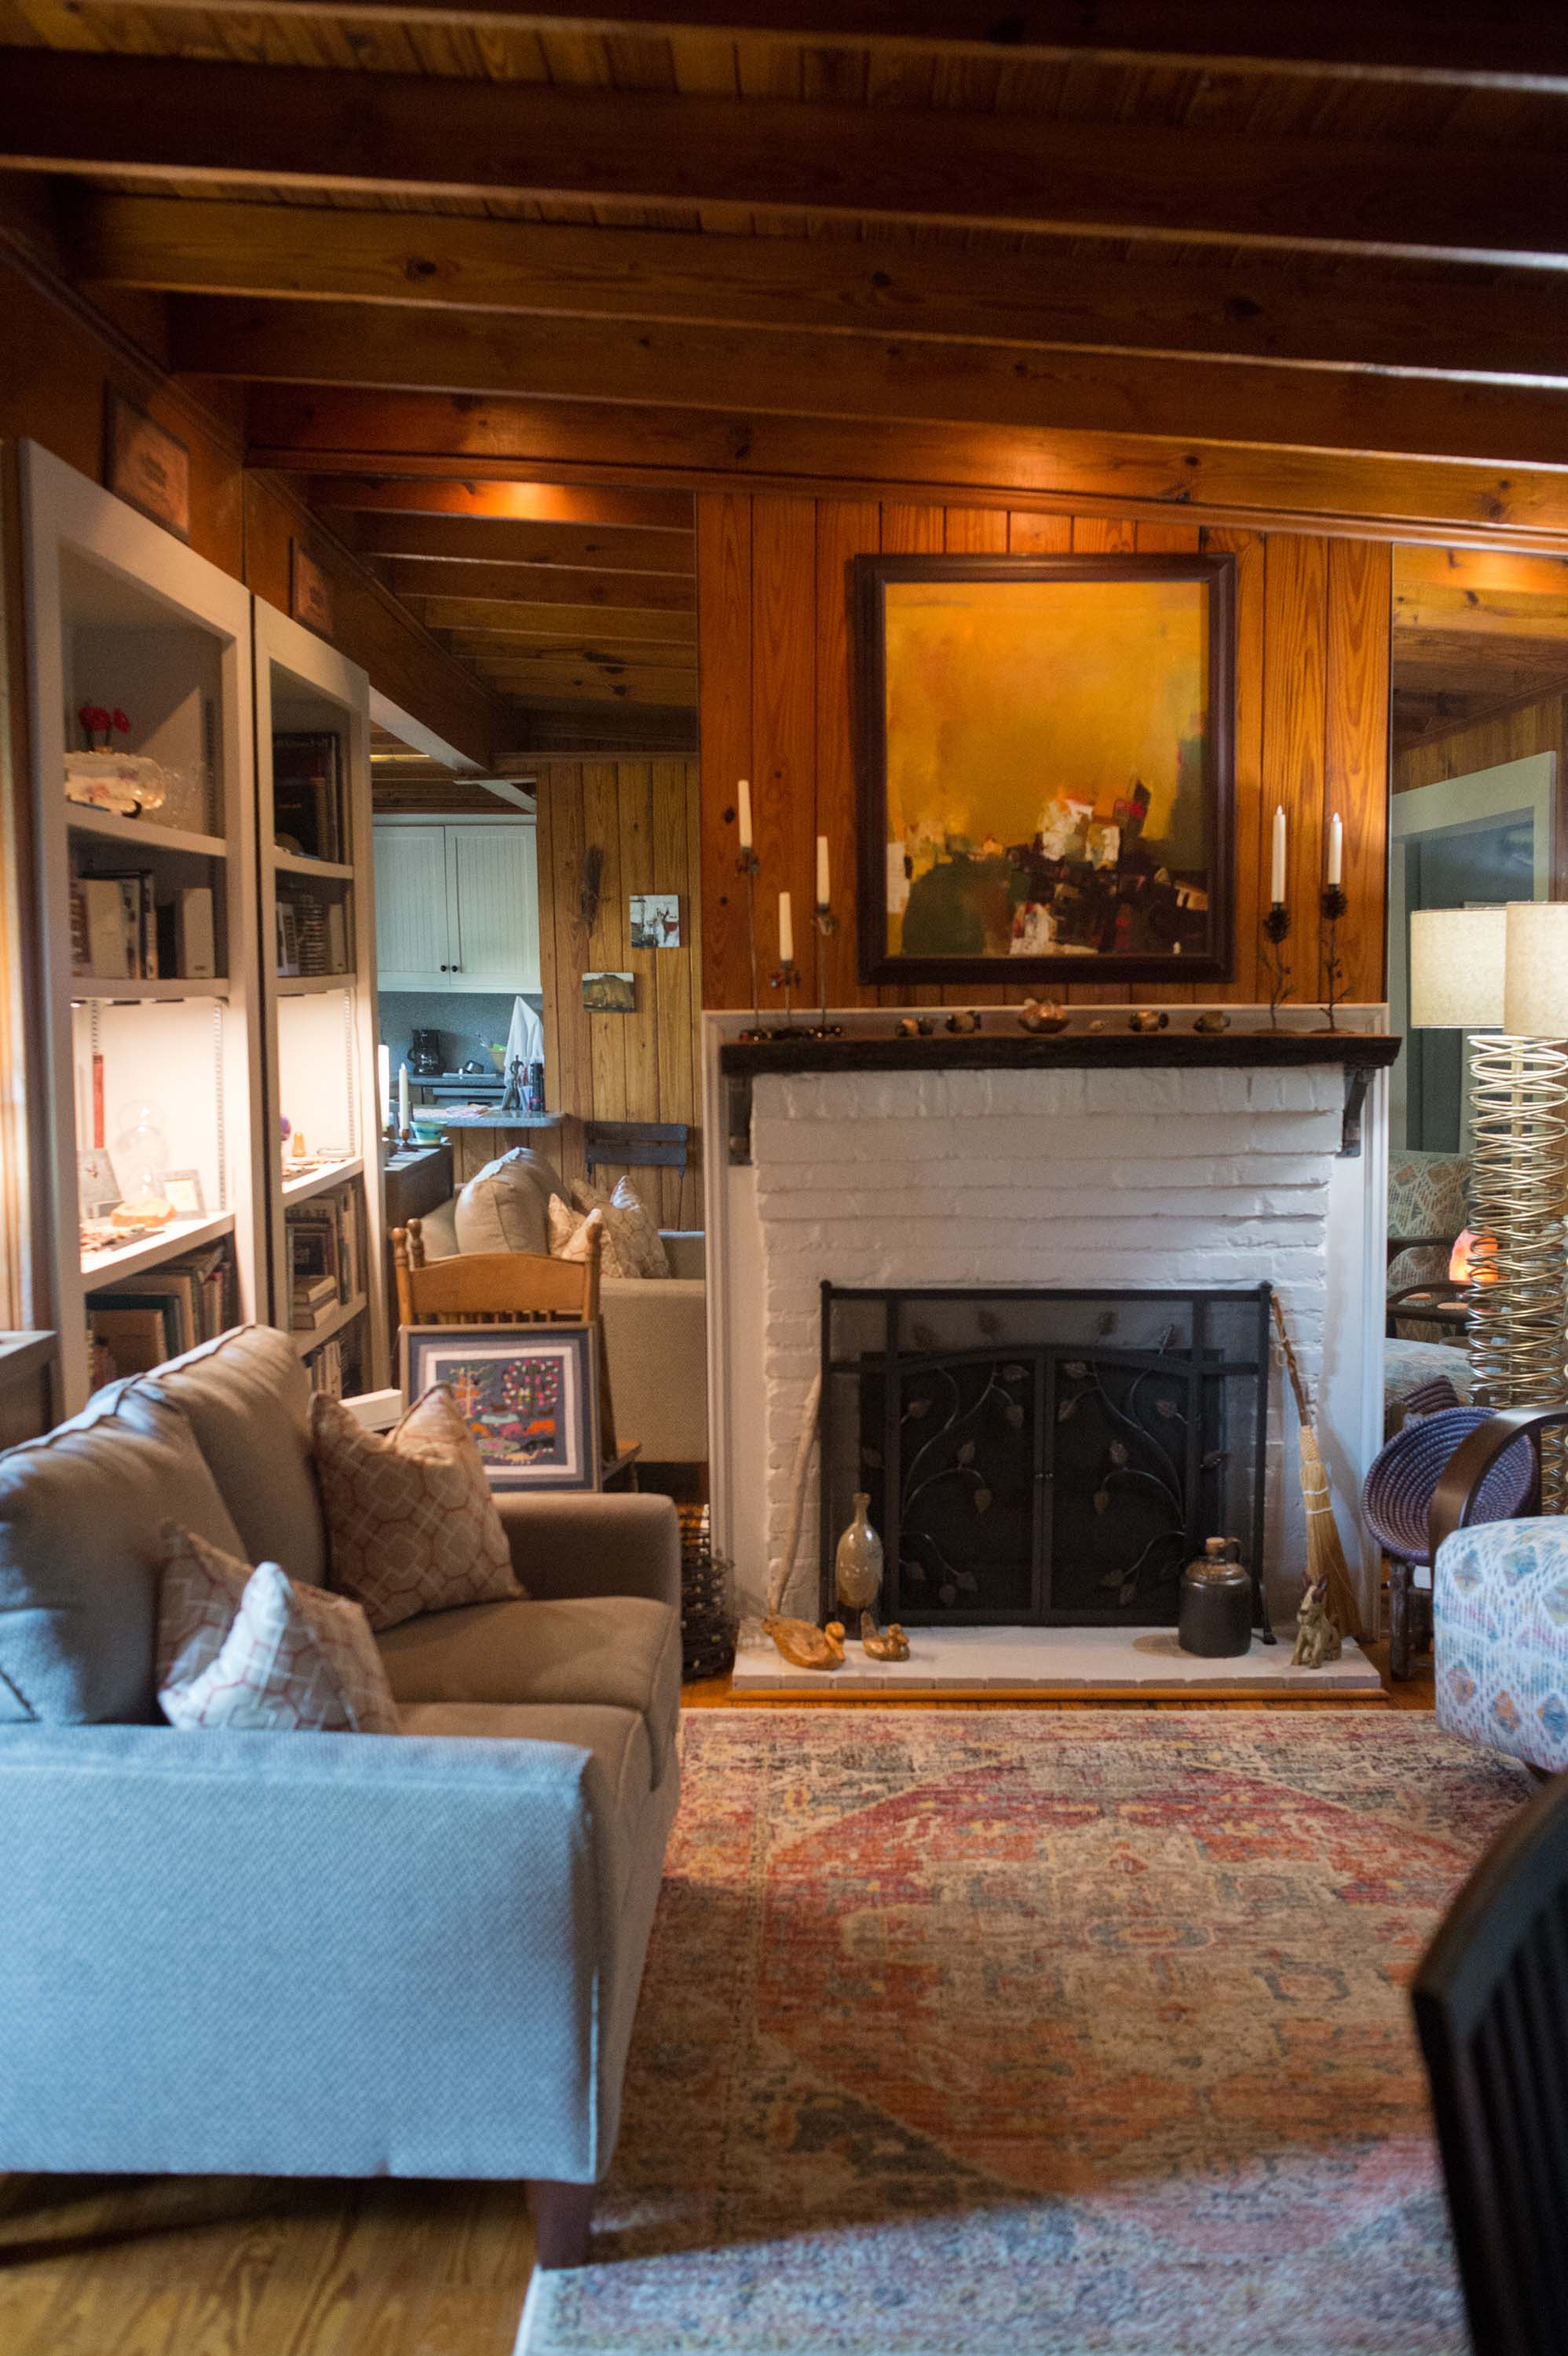 Living Room Fireplace with Sofa, Candlesticks, Artwork and Large Loloi Area Rug